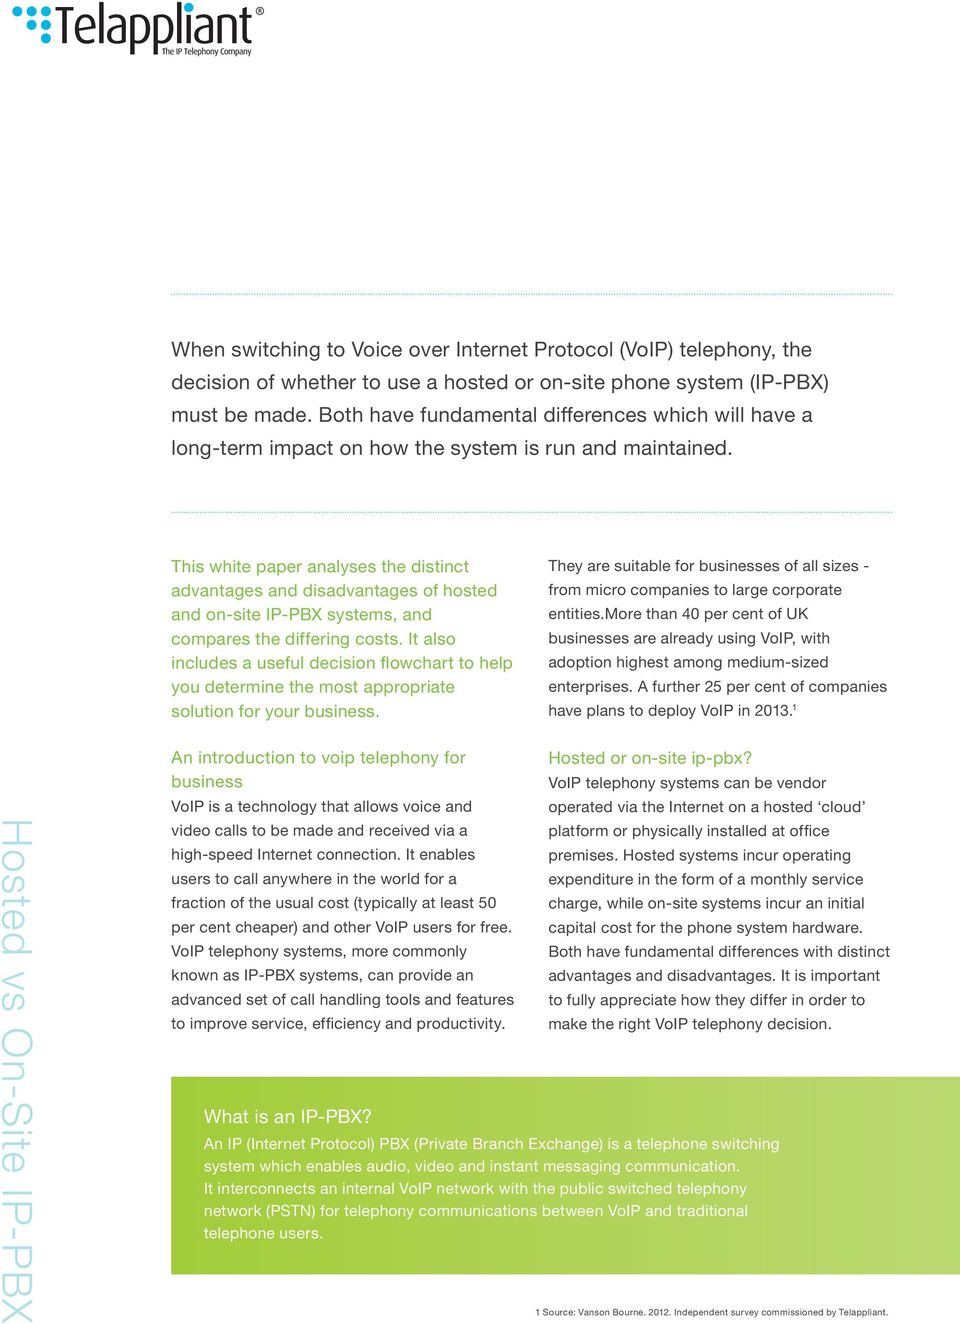 This white paper analyses the distinct advantages and disadvantages of hosted and on-site IP-PBX systems, and compares the differing costs.